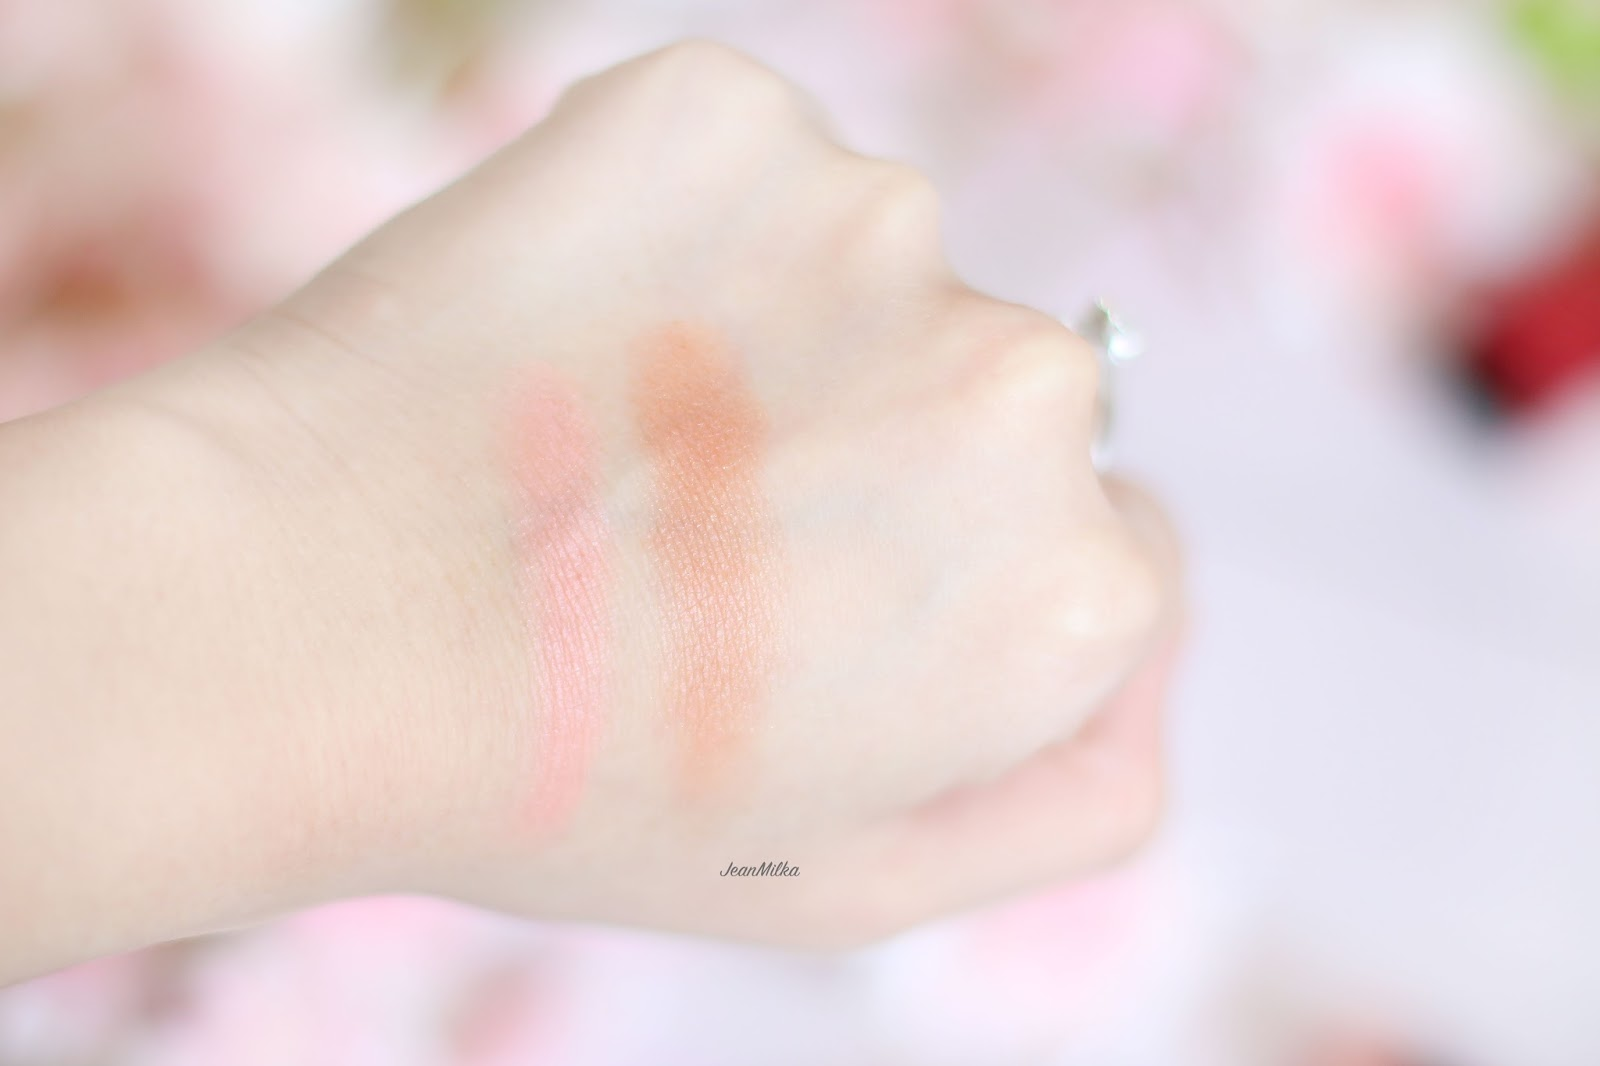 wardah, blush on, wardah blush on, wardah blush review, review, drugstore, makeup, kosmetik indonesia, makeup indonesia